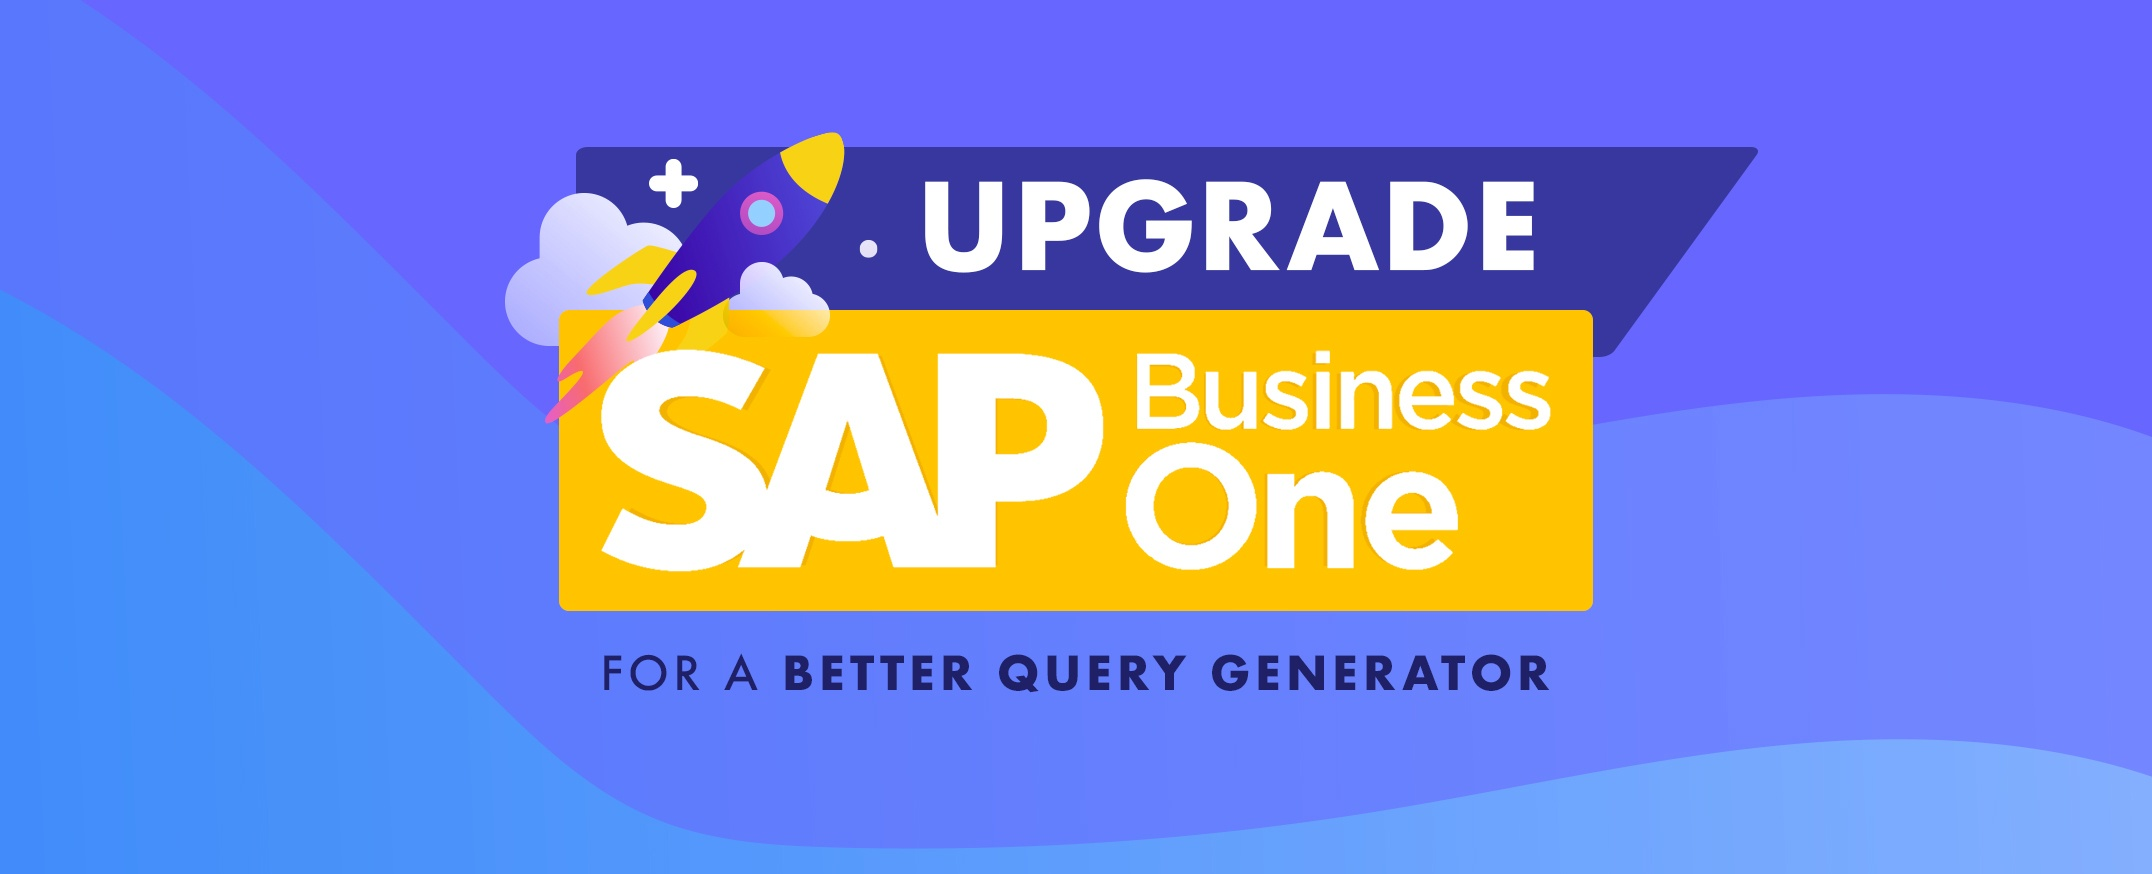 Upgrade-SAP-Business-One-ERP-for-a-Better-Query-Generator